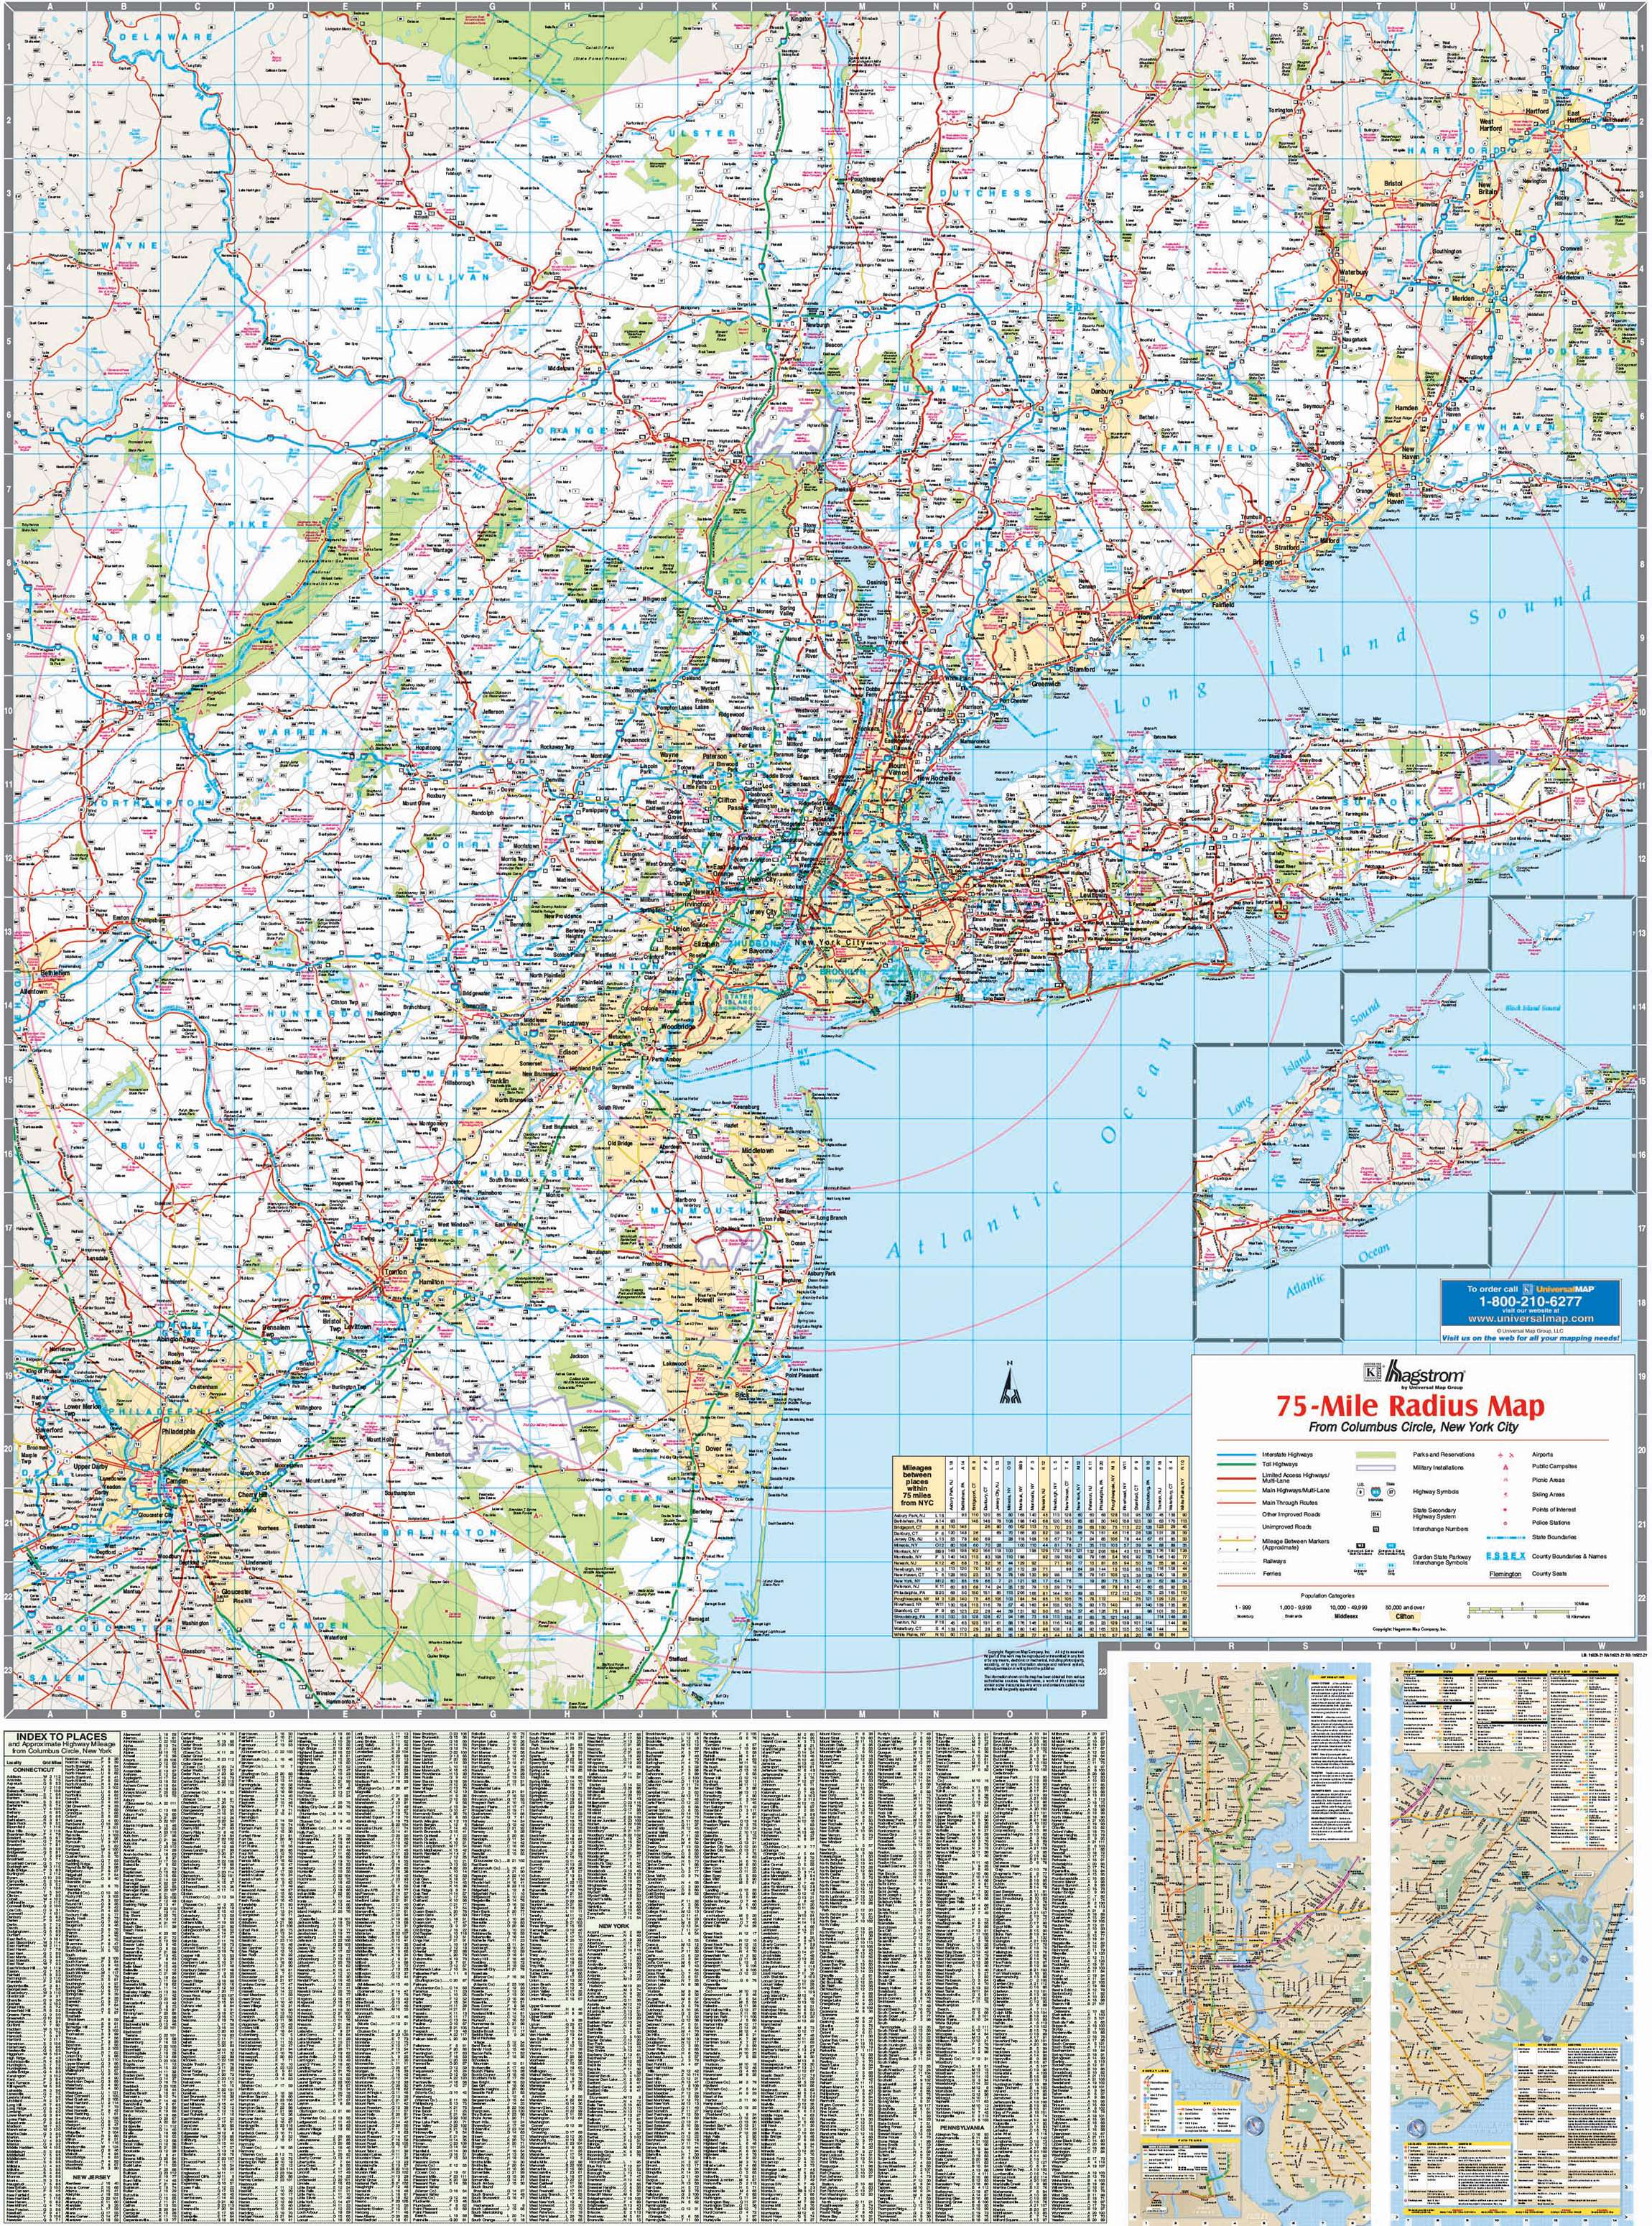 Tri State Area Map New York Tri State Vicinity Wall Map – KAPPA MAP GROUP